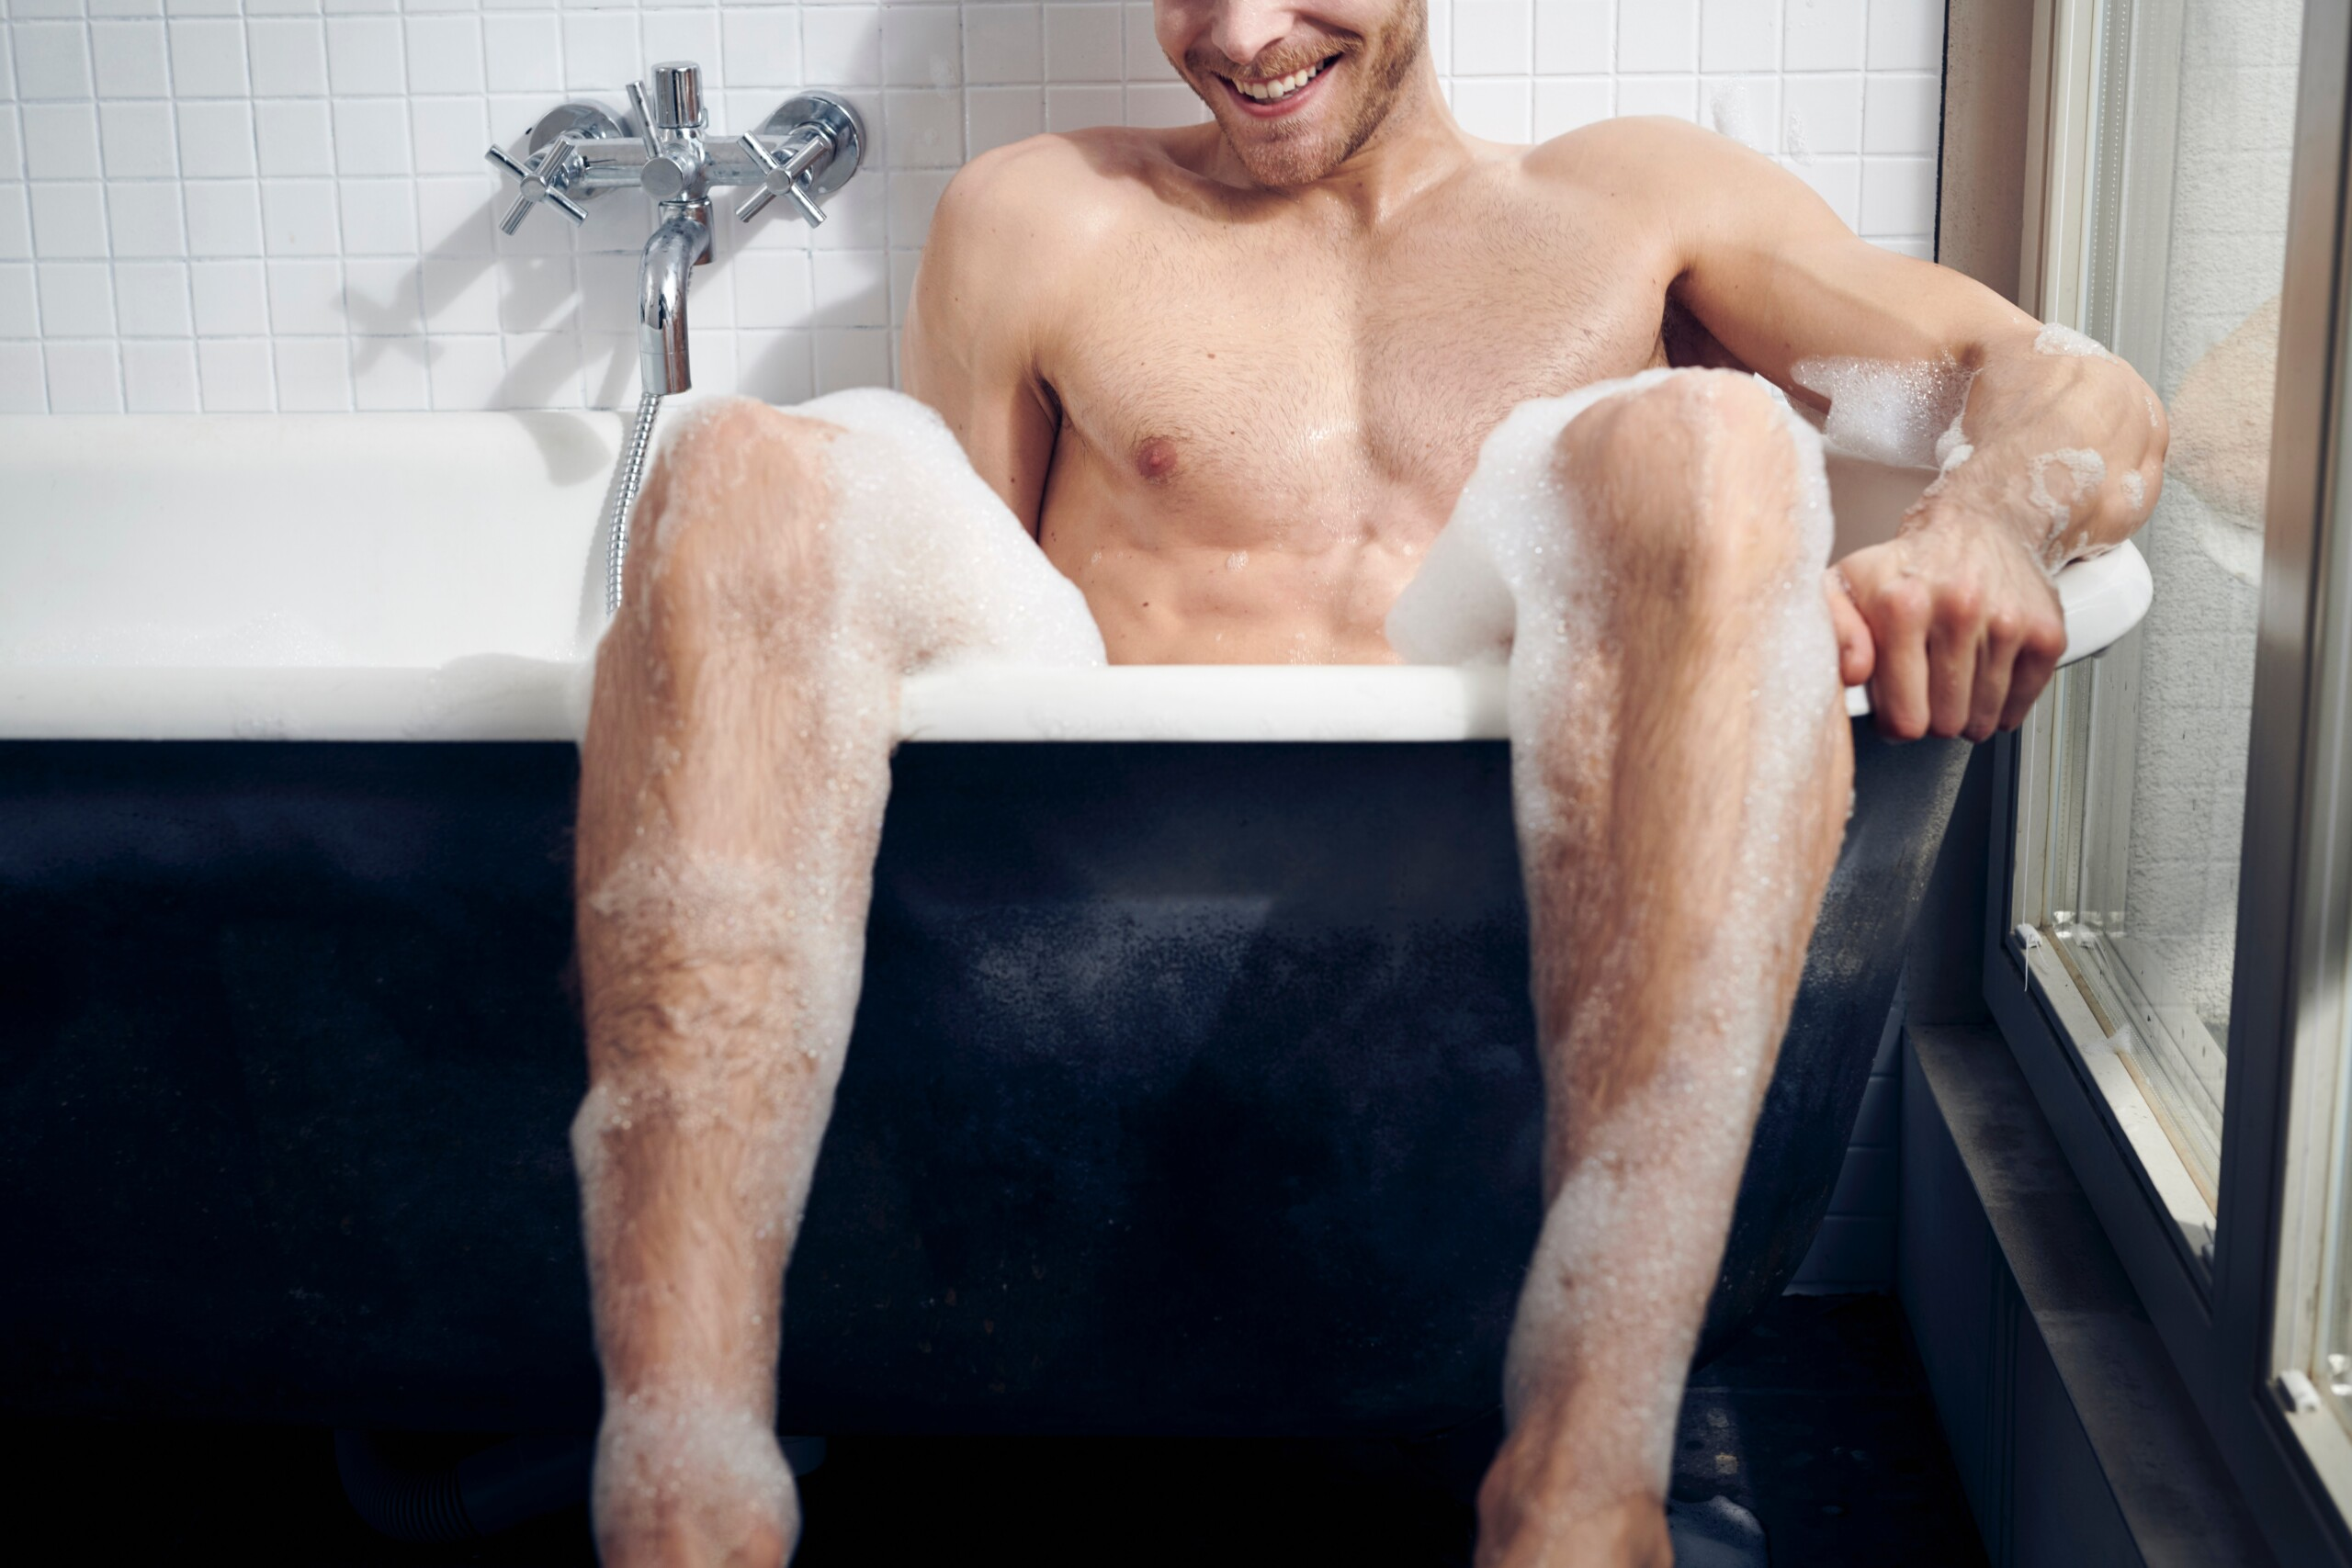 Burning Question. What is the ideal water temperature for a bubble bath?